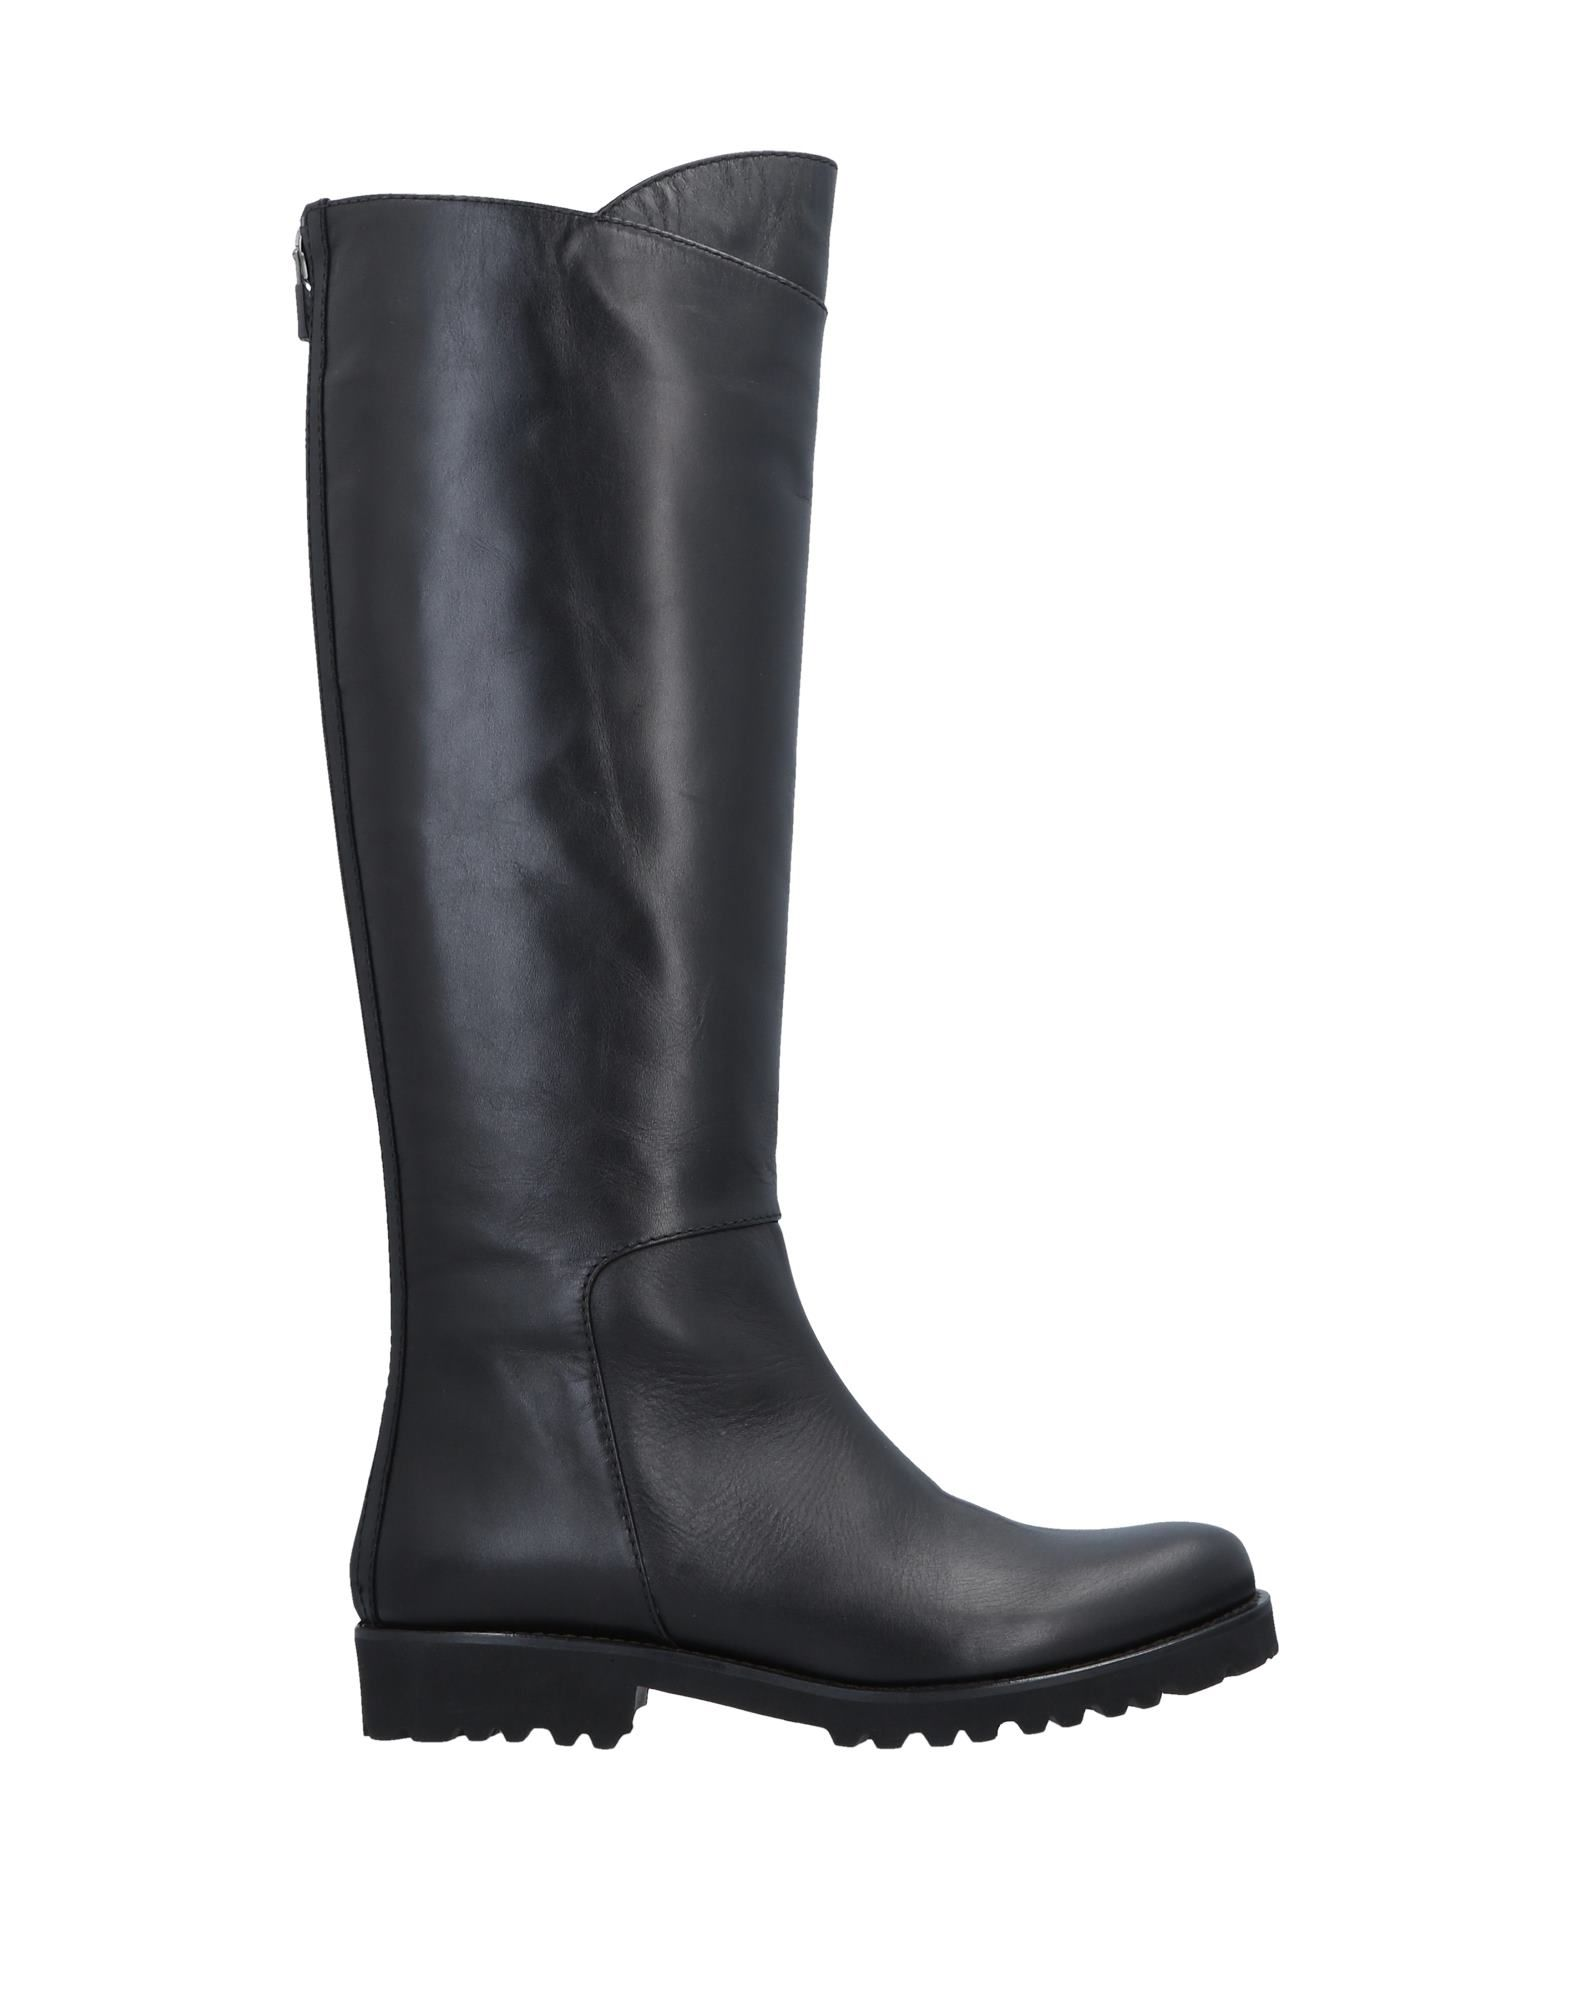 Peter Flowers Boots Boots - Women Peter Flowers Boots Boots online on  Australia - 11533319FQ aecbed